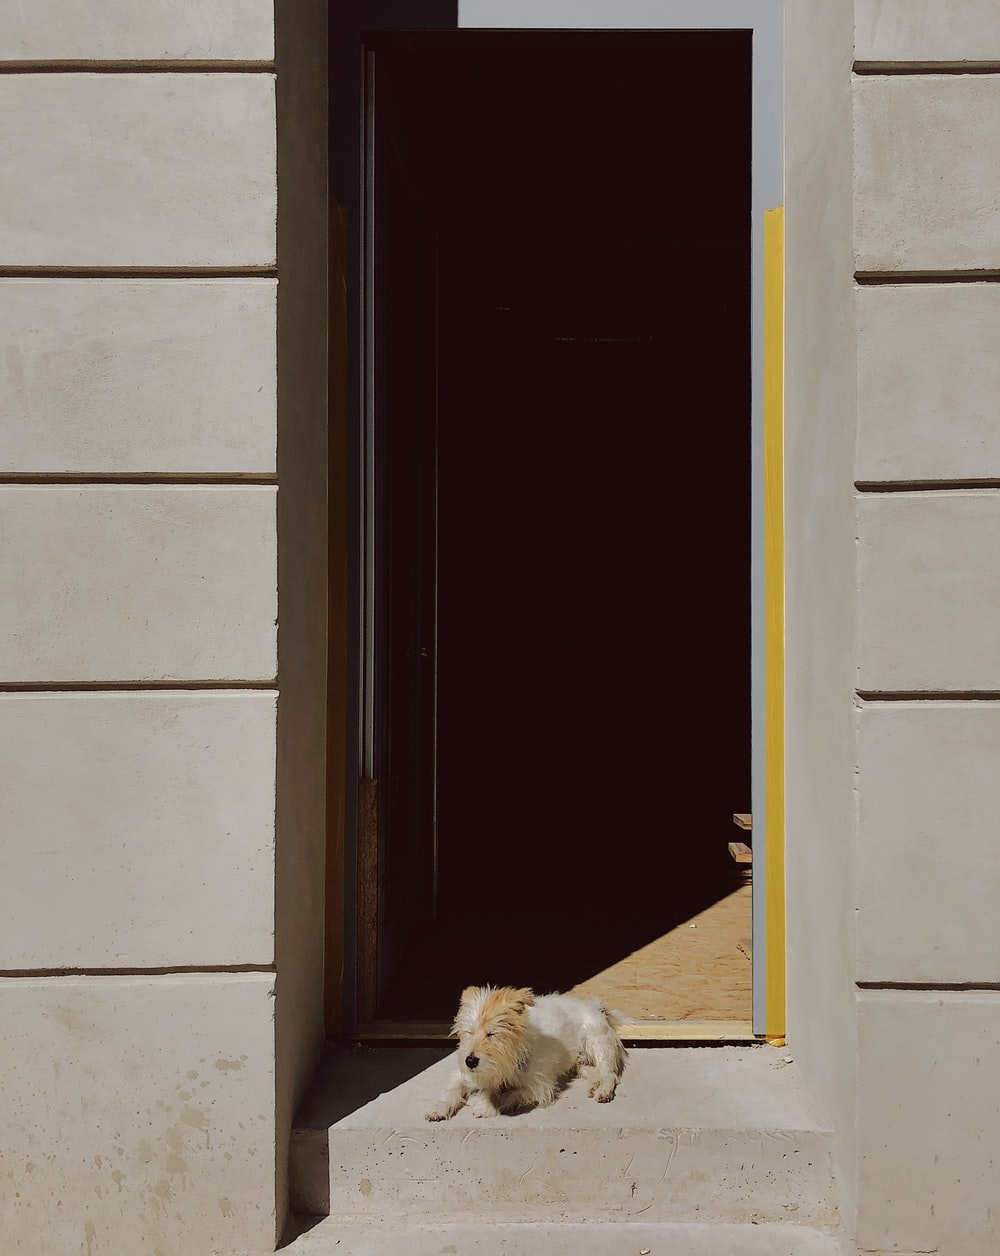 brown and white short coat small dog lying on house front step